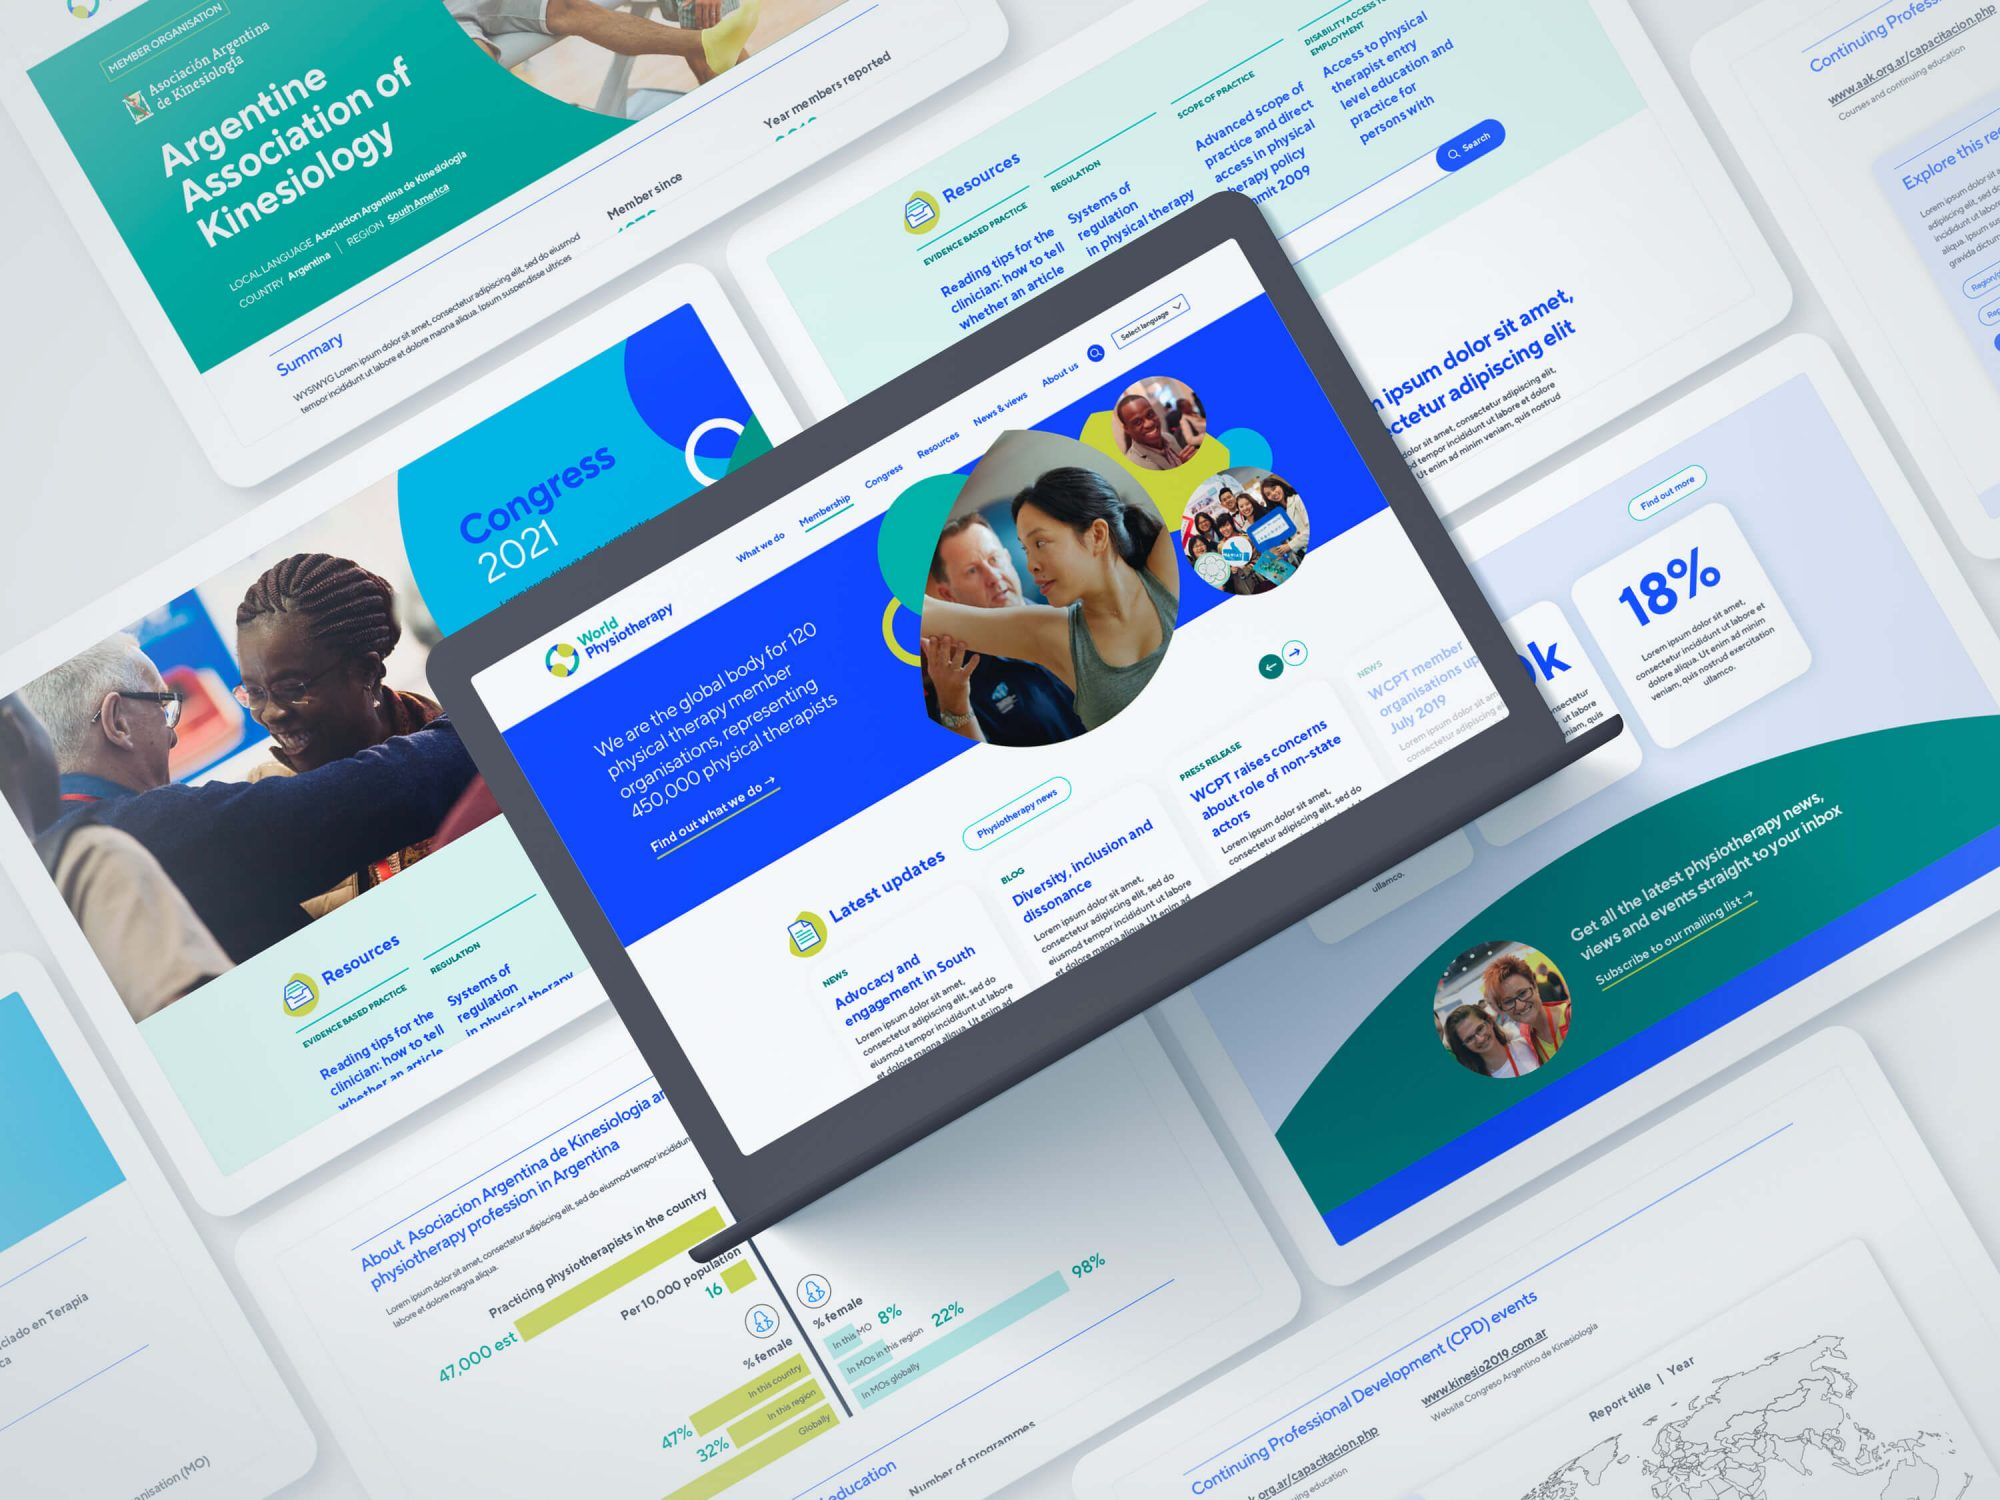 Designs of pages on the World Physiotherapy website